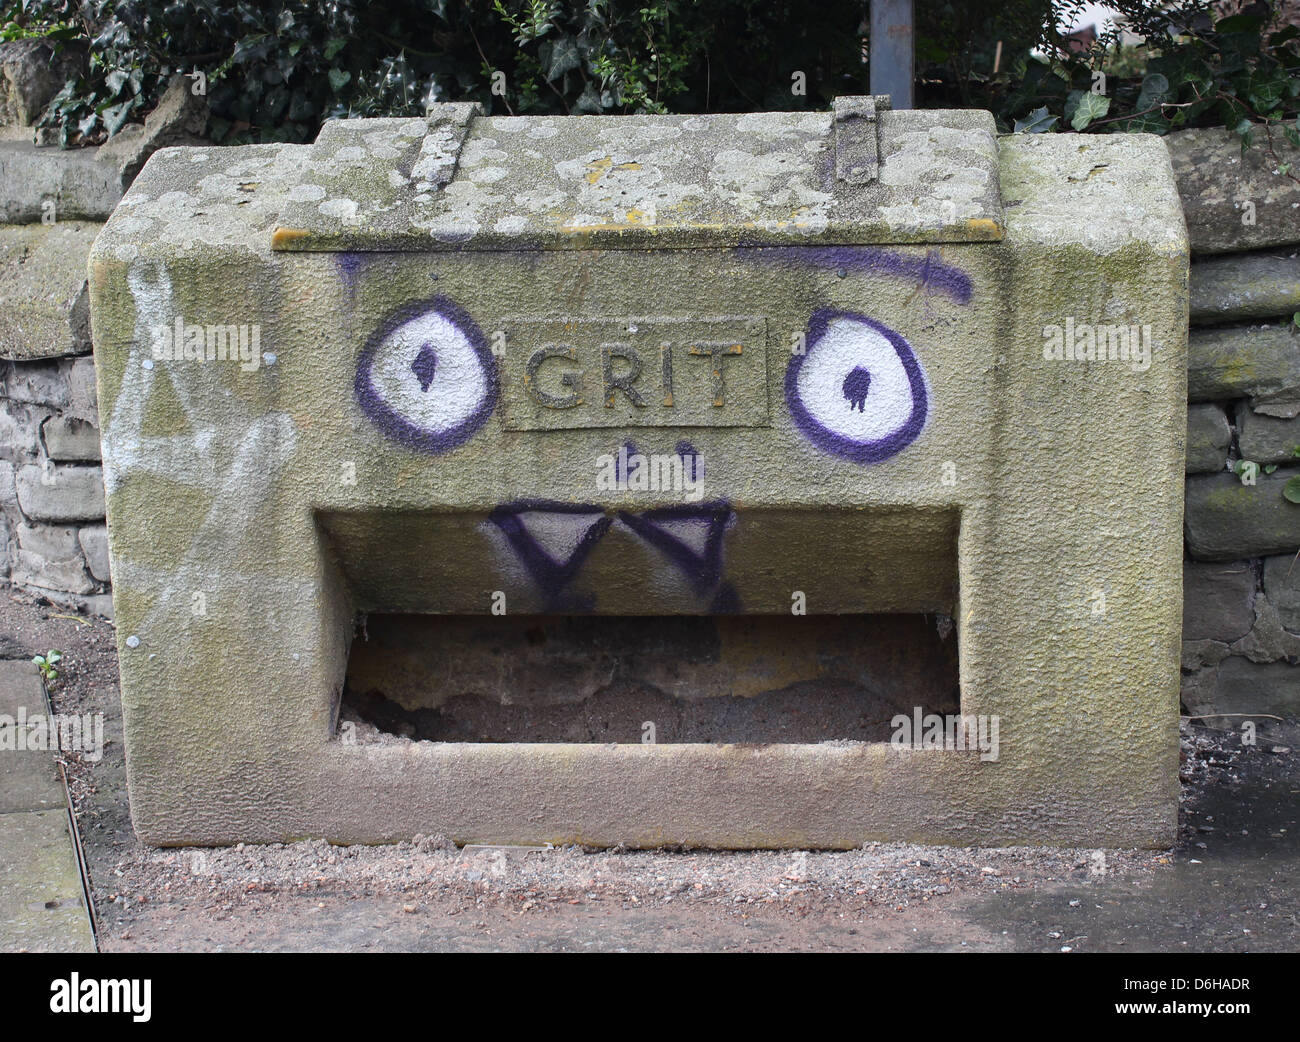 Grit bin with graffiti face painted on - Stock Image